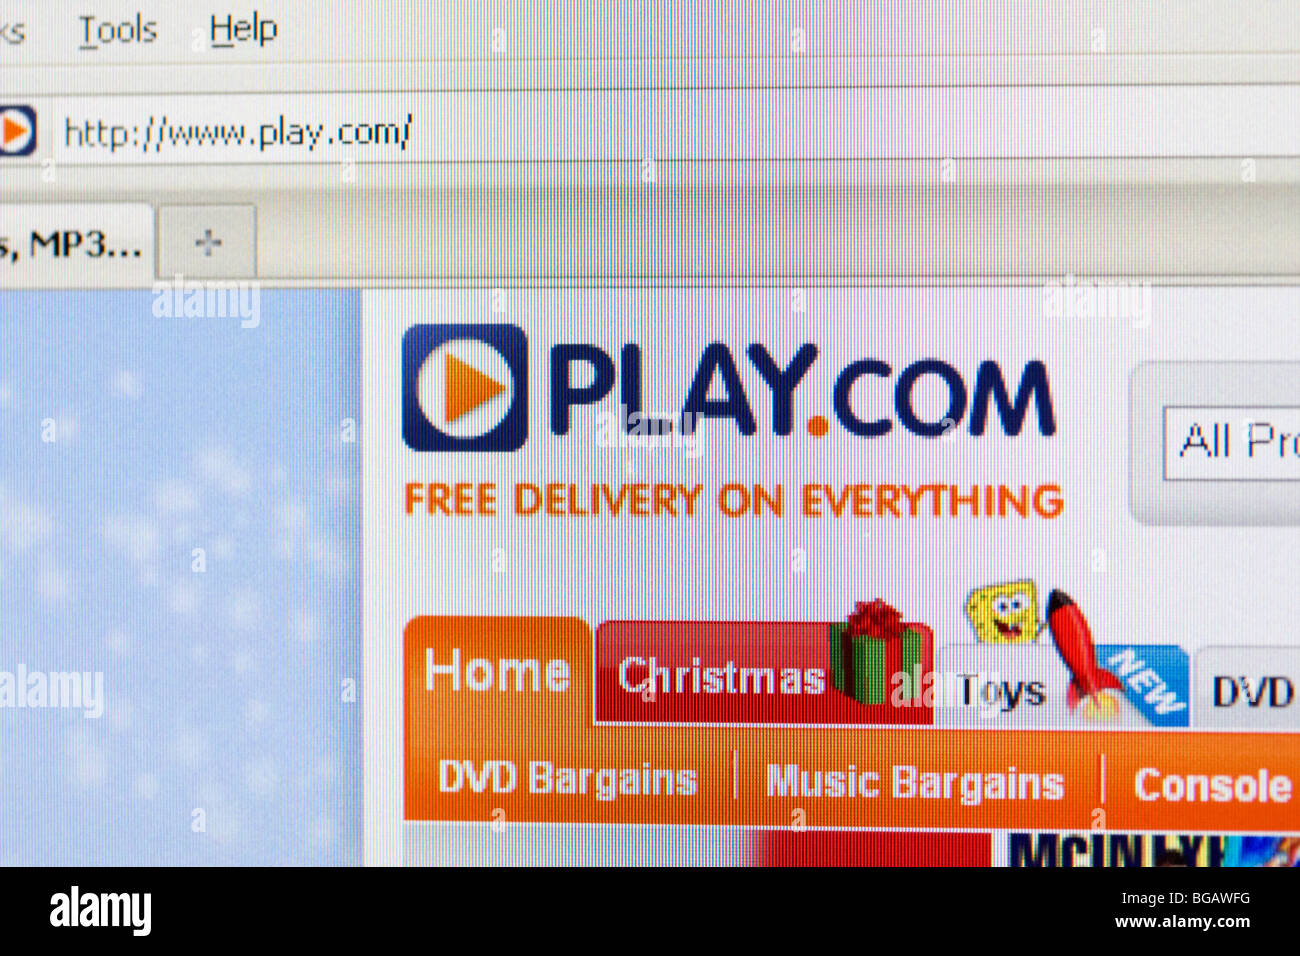 screenshot of play.com online retailer website showing christmas logo and tab for editorial use only - Stock Image